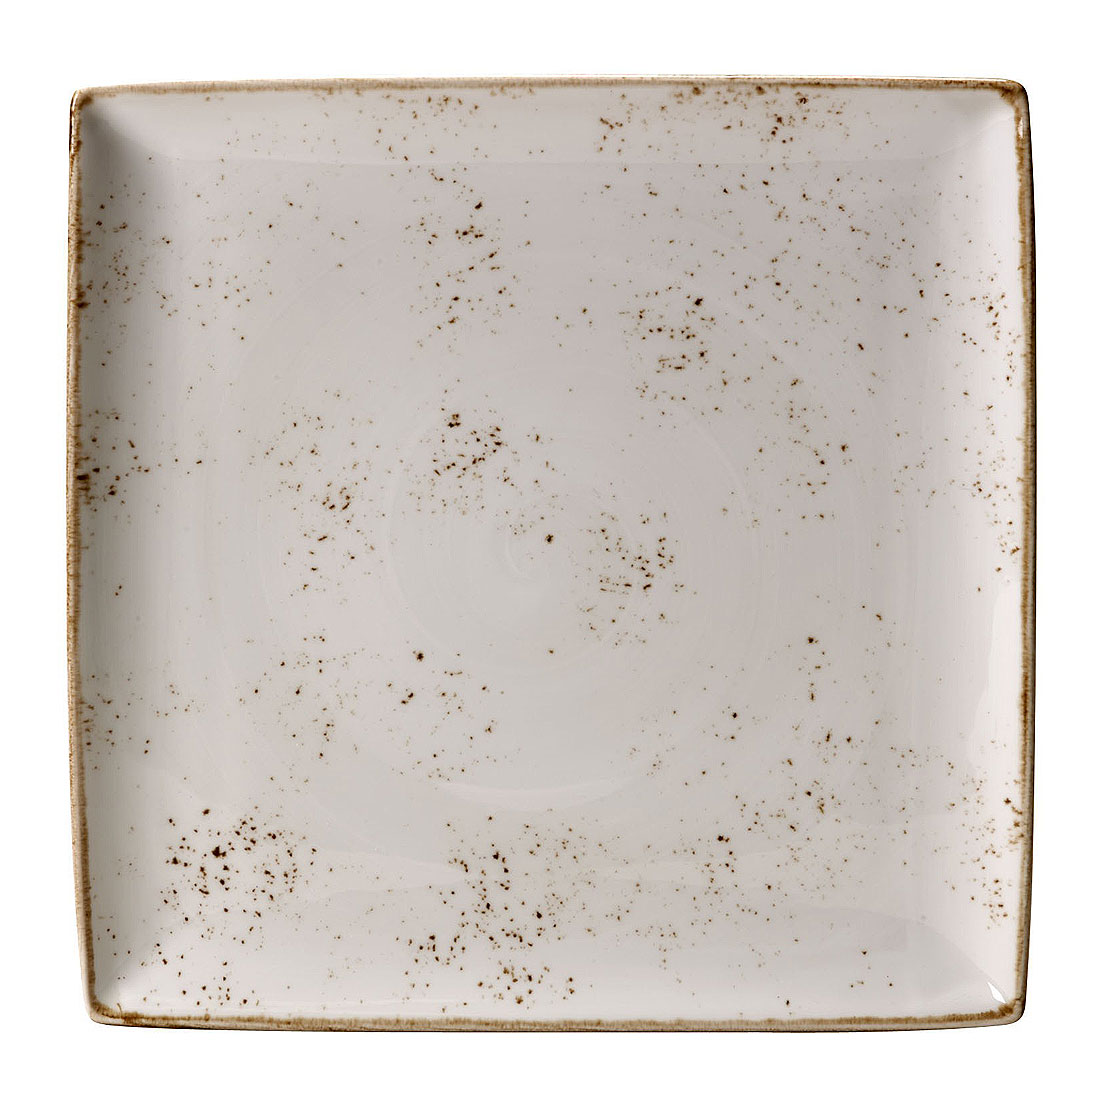 Блюдо квадратное Craft White, 27x27 см, Фарфор, Steelite, Craft White